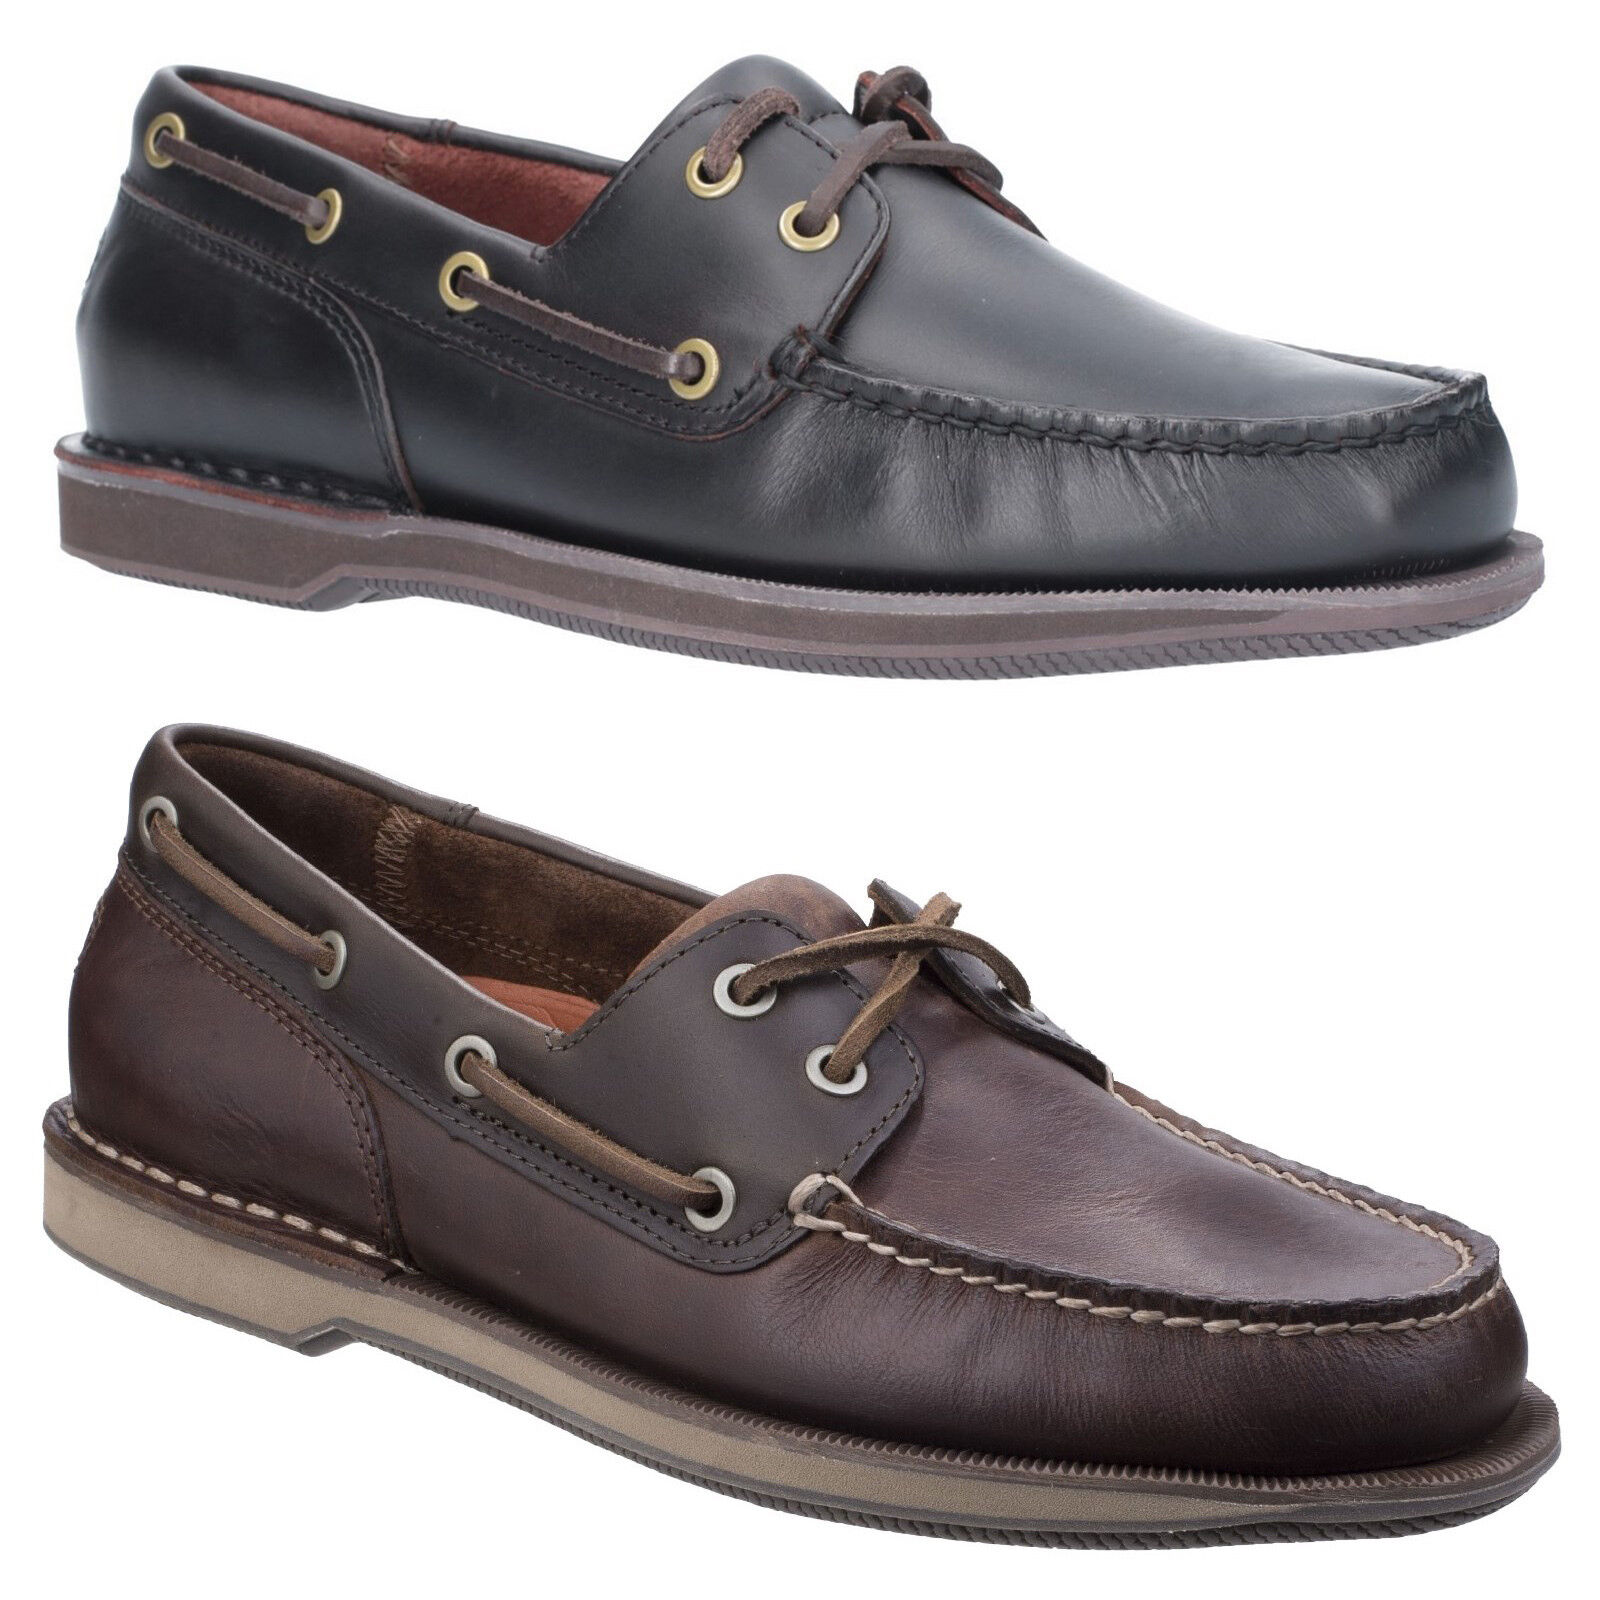 f6aa6d75c63 Rockport Perth Boat Shoes Mens Padded Leather Classic Casual Smart Loafers